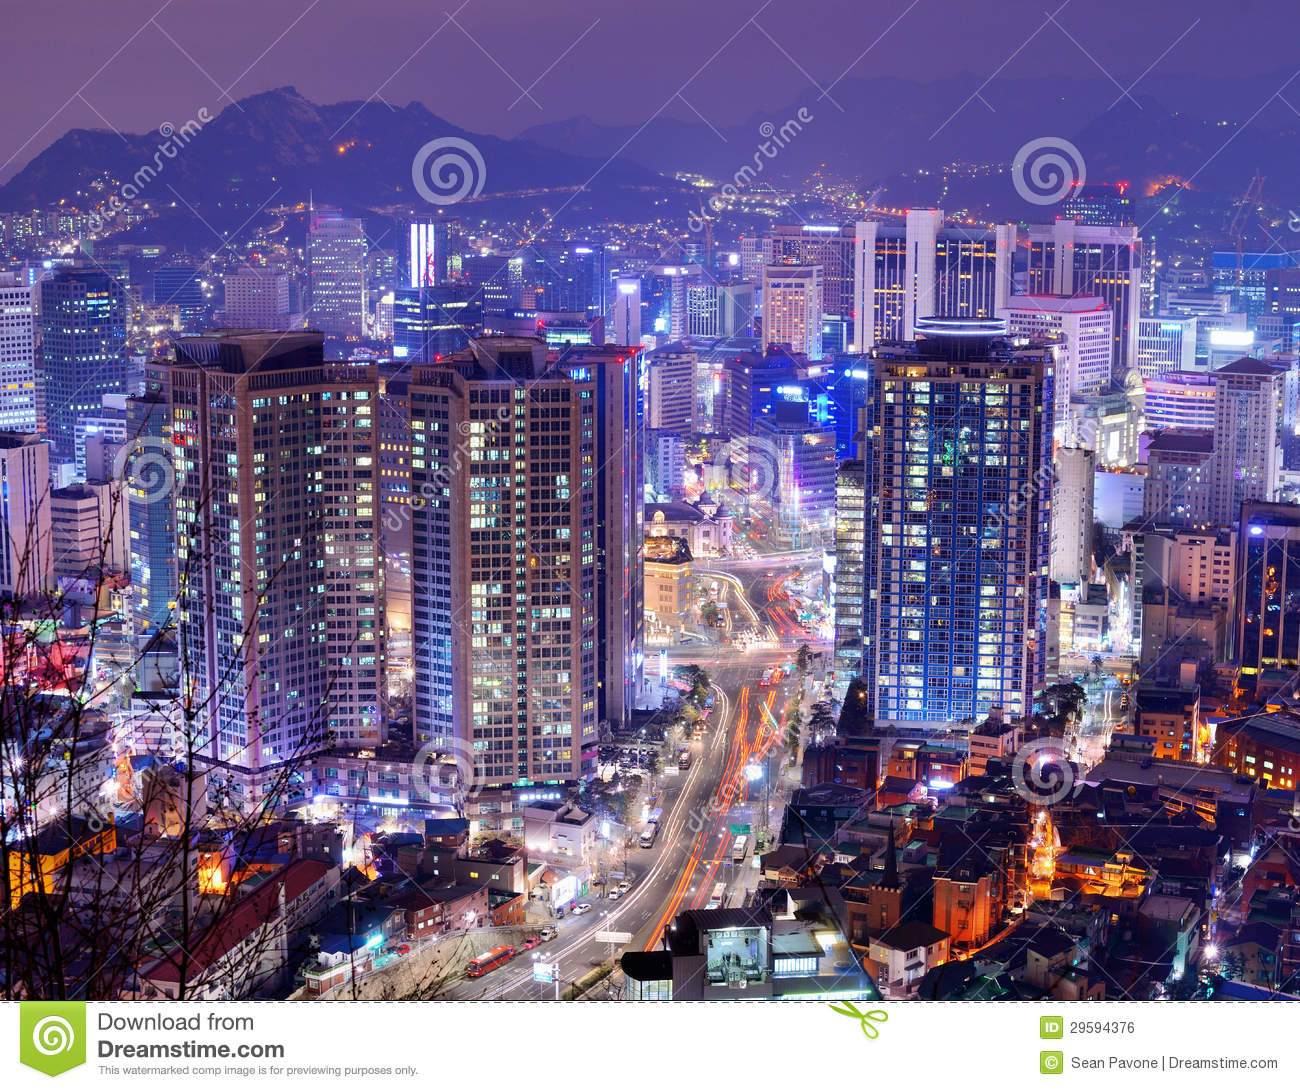 Seoul Gangnam District Royalty Free Stock Image - Image: 29594376